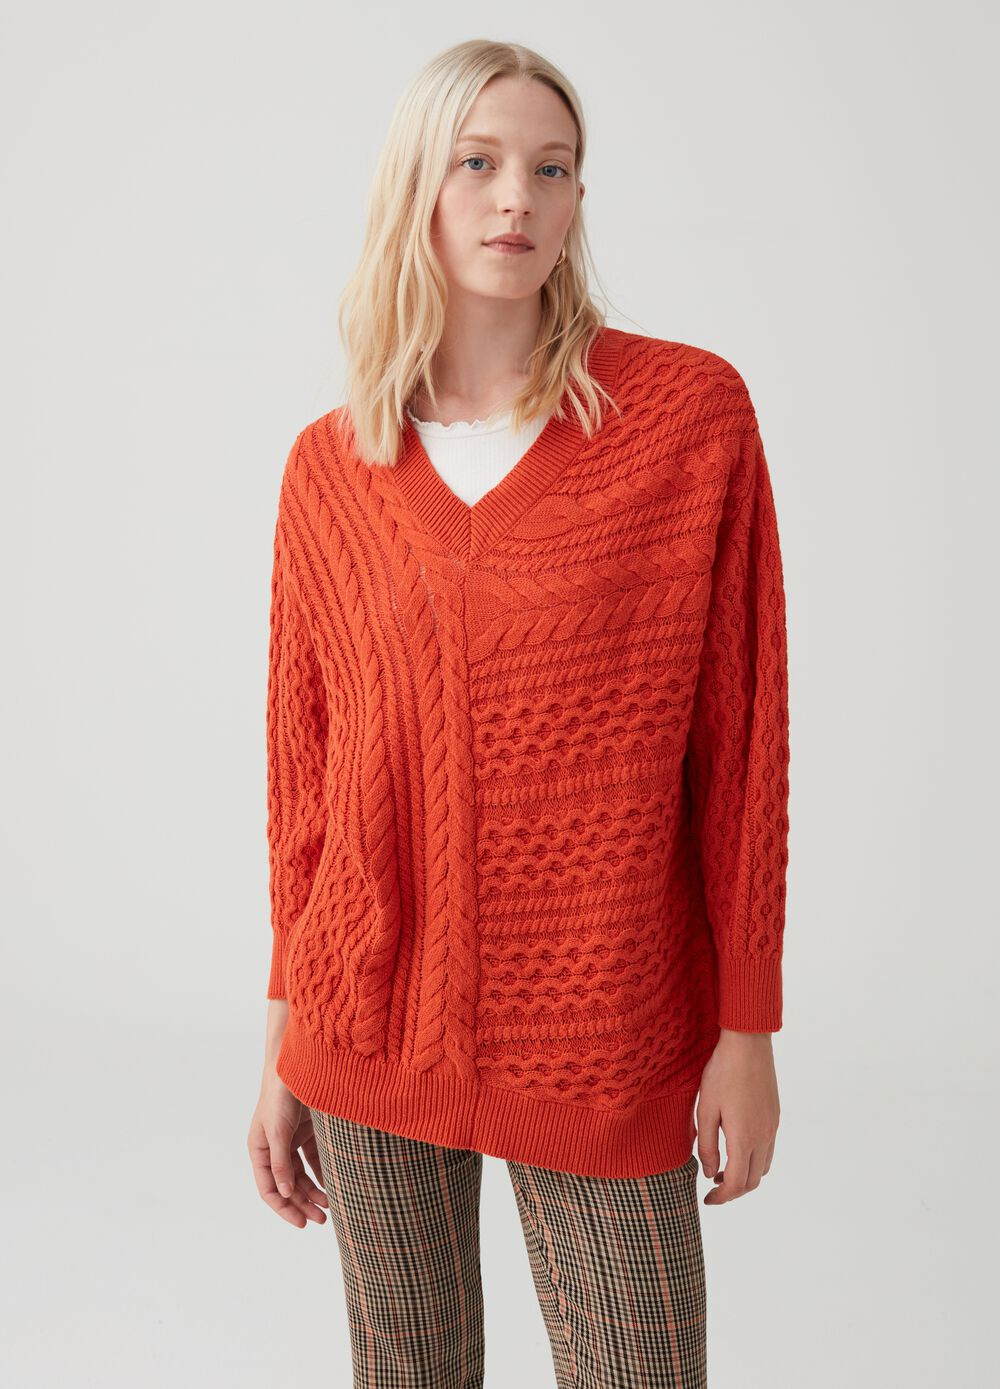 Knit pullover with geometric weave